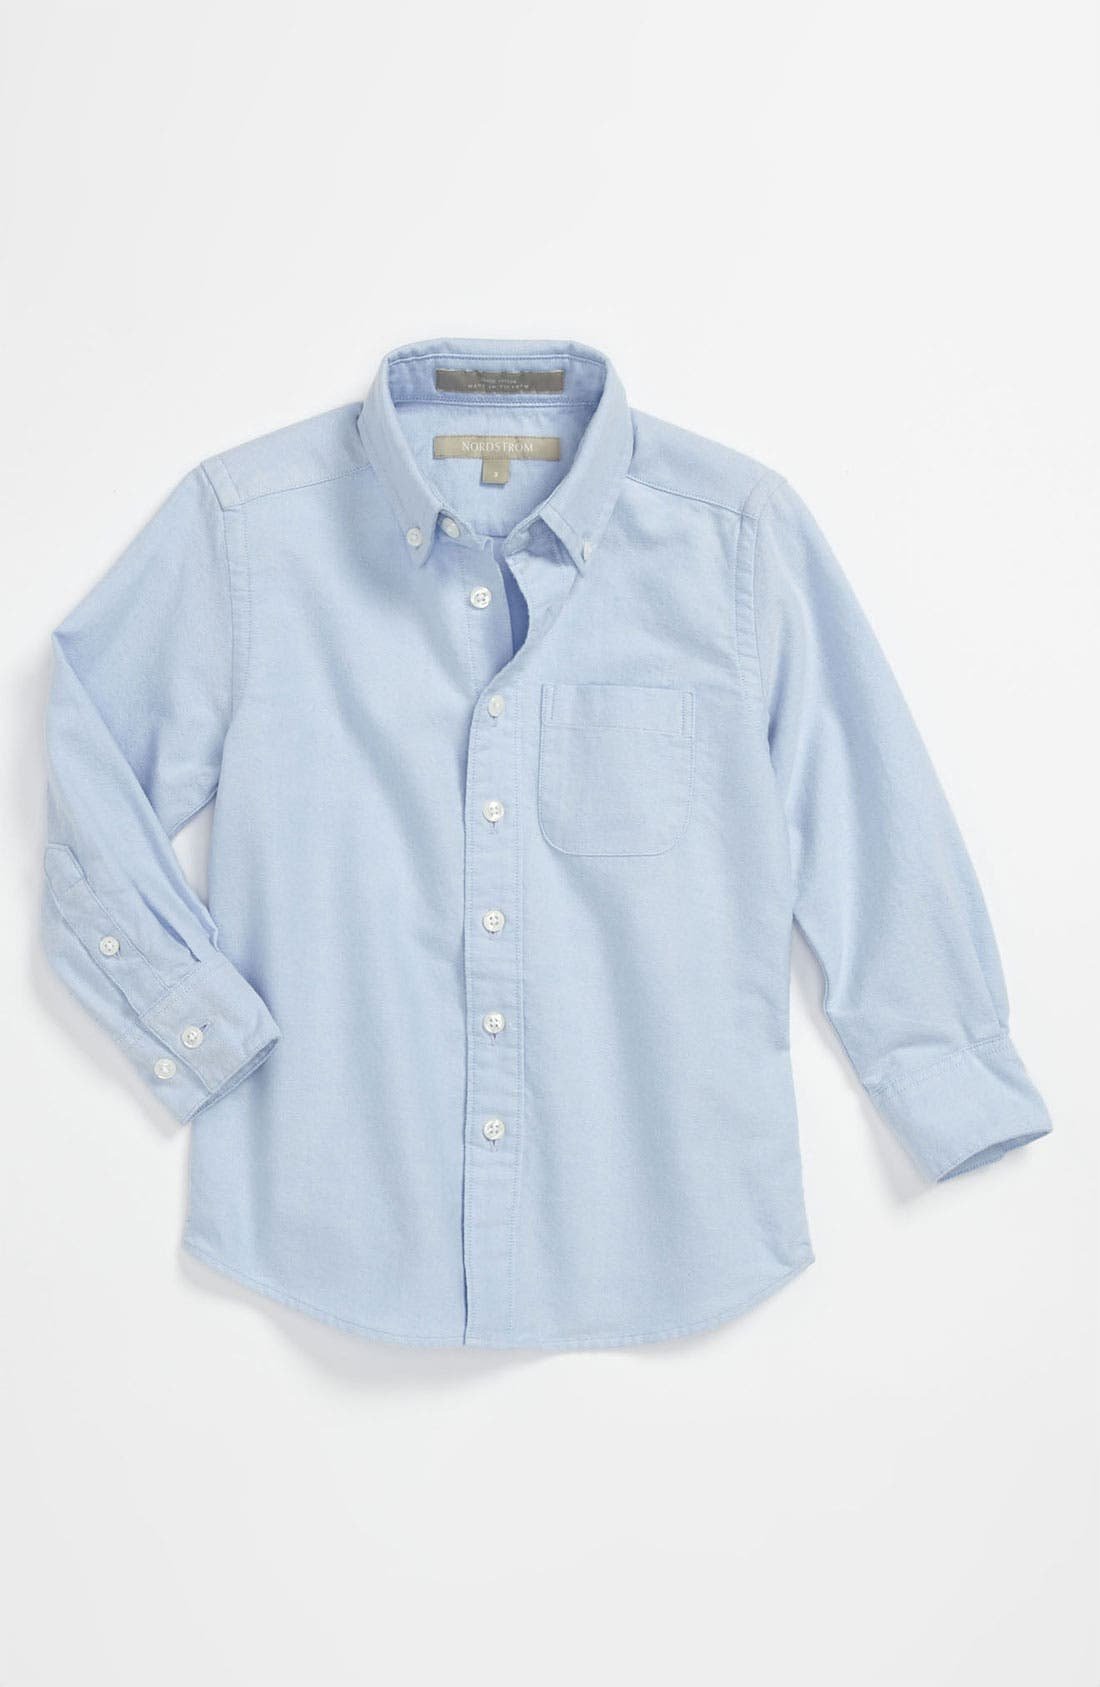 Main Image - Nordstrom 'Michael' Oxford Woven Shirt (Toddler)